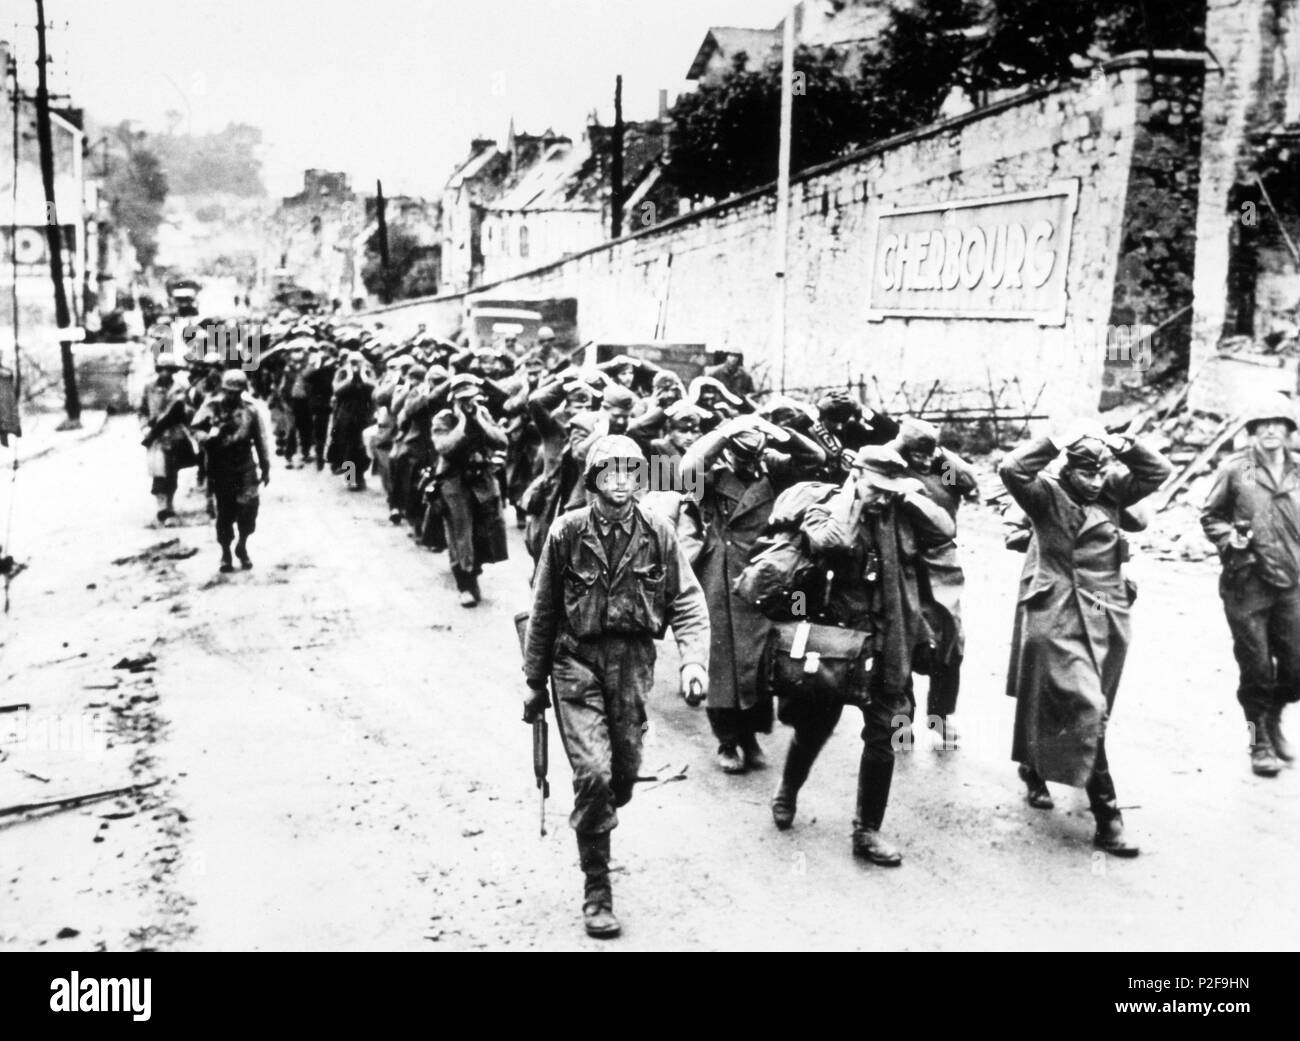 US GI's march German prisoners out of Cherbourg after the Battle of Cherbourg, June 1944. - Stock Image